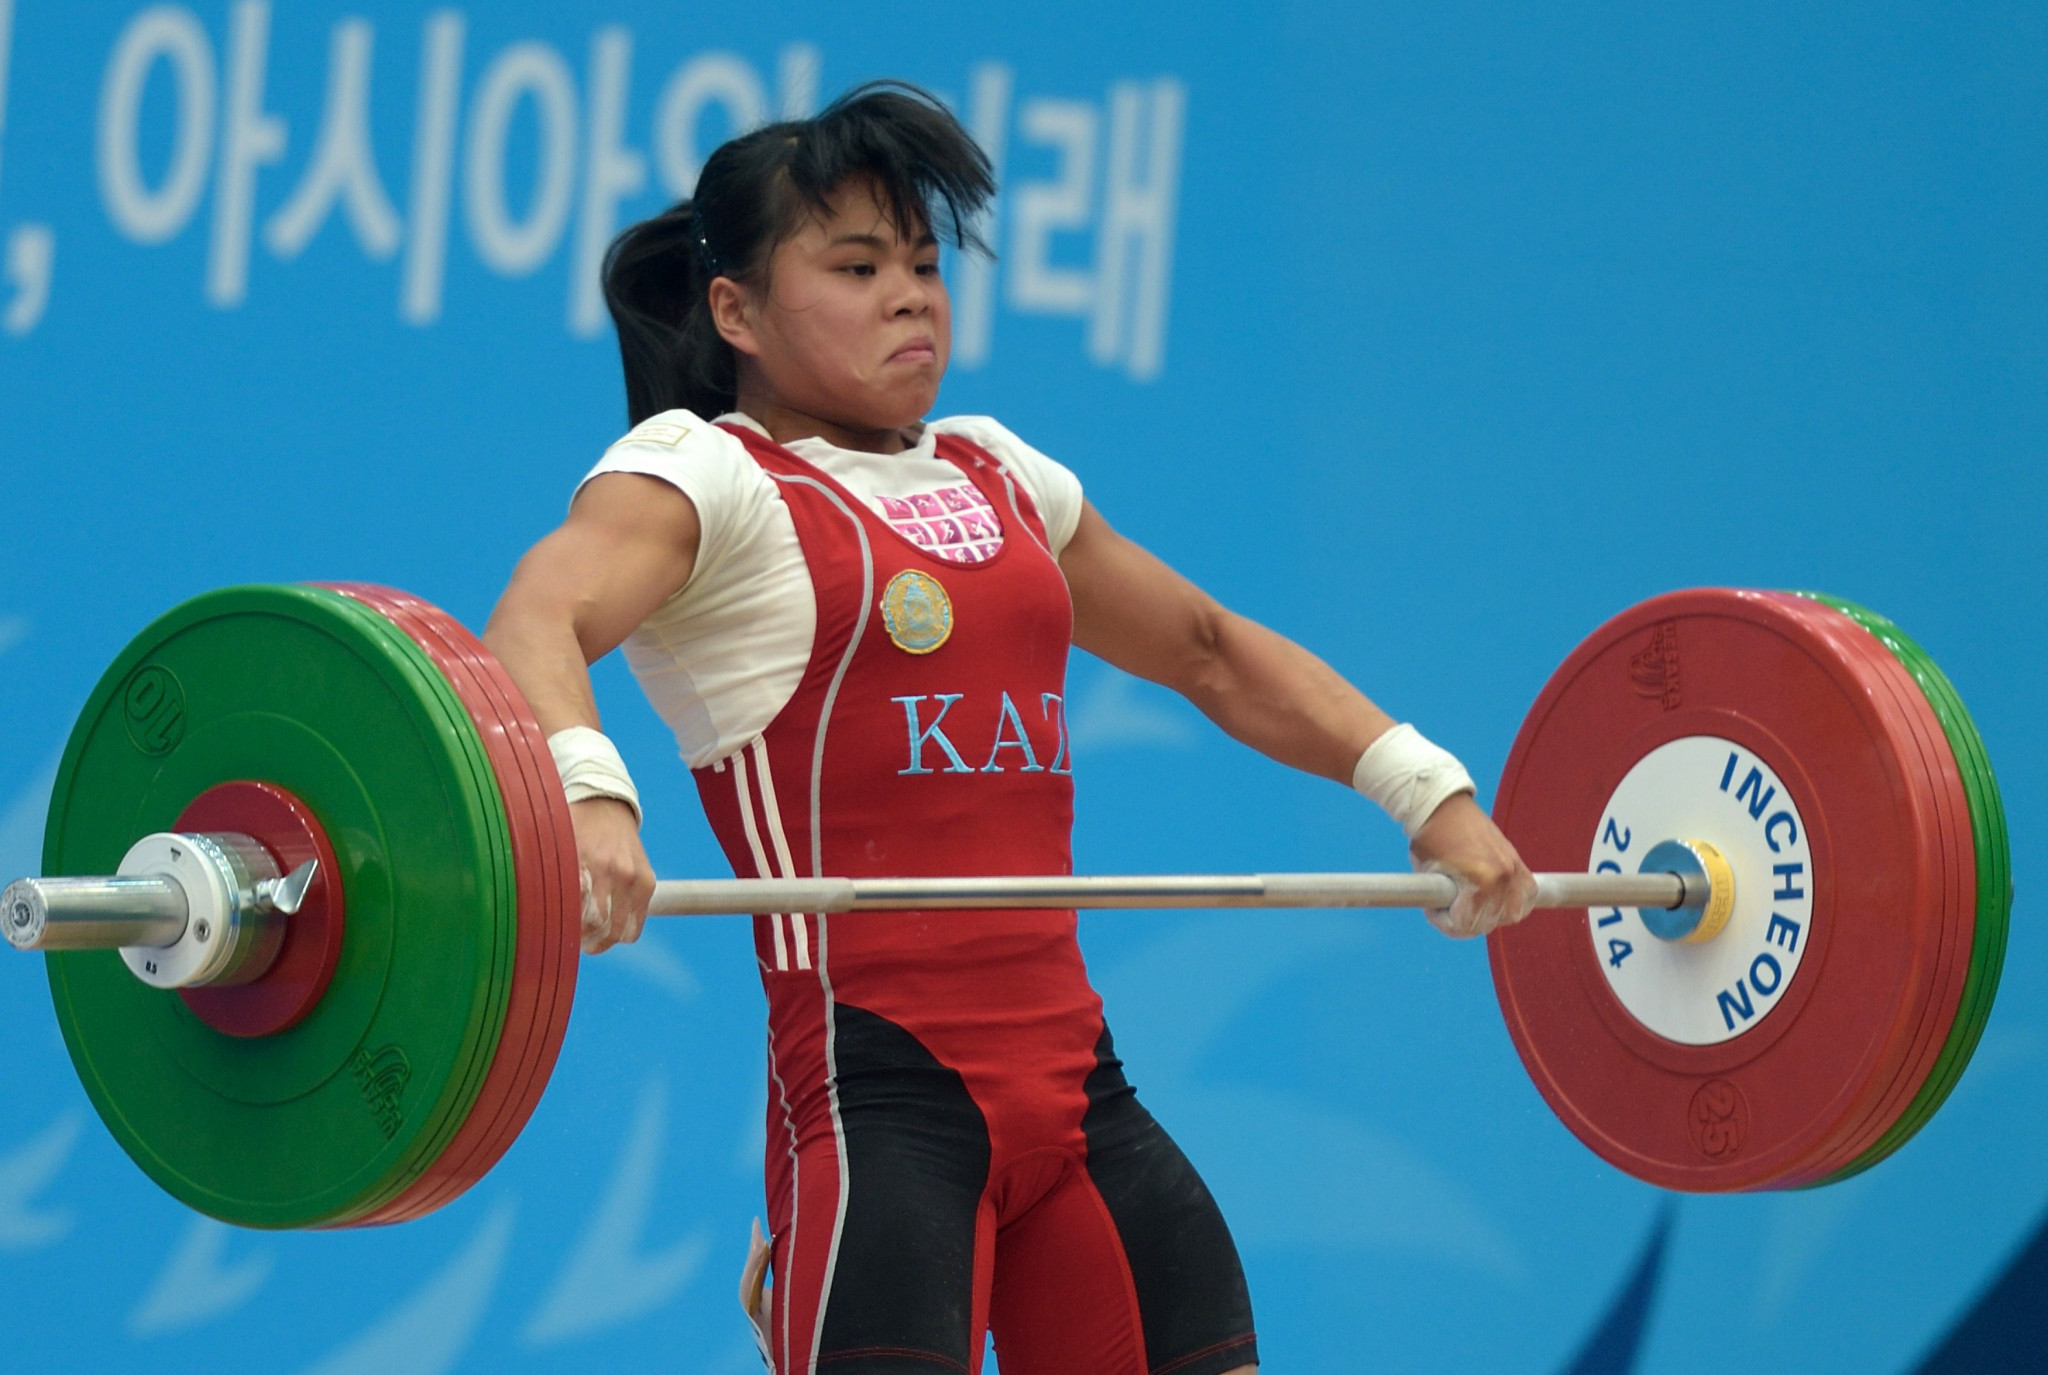 Kazakhstan's Zulfiya Chinshanlo is among the lifters expected to compete ©Getty Images